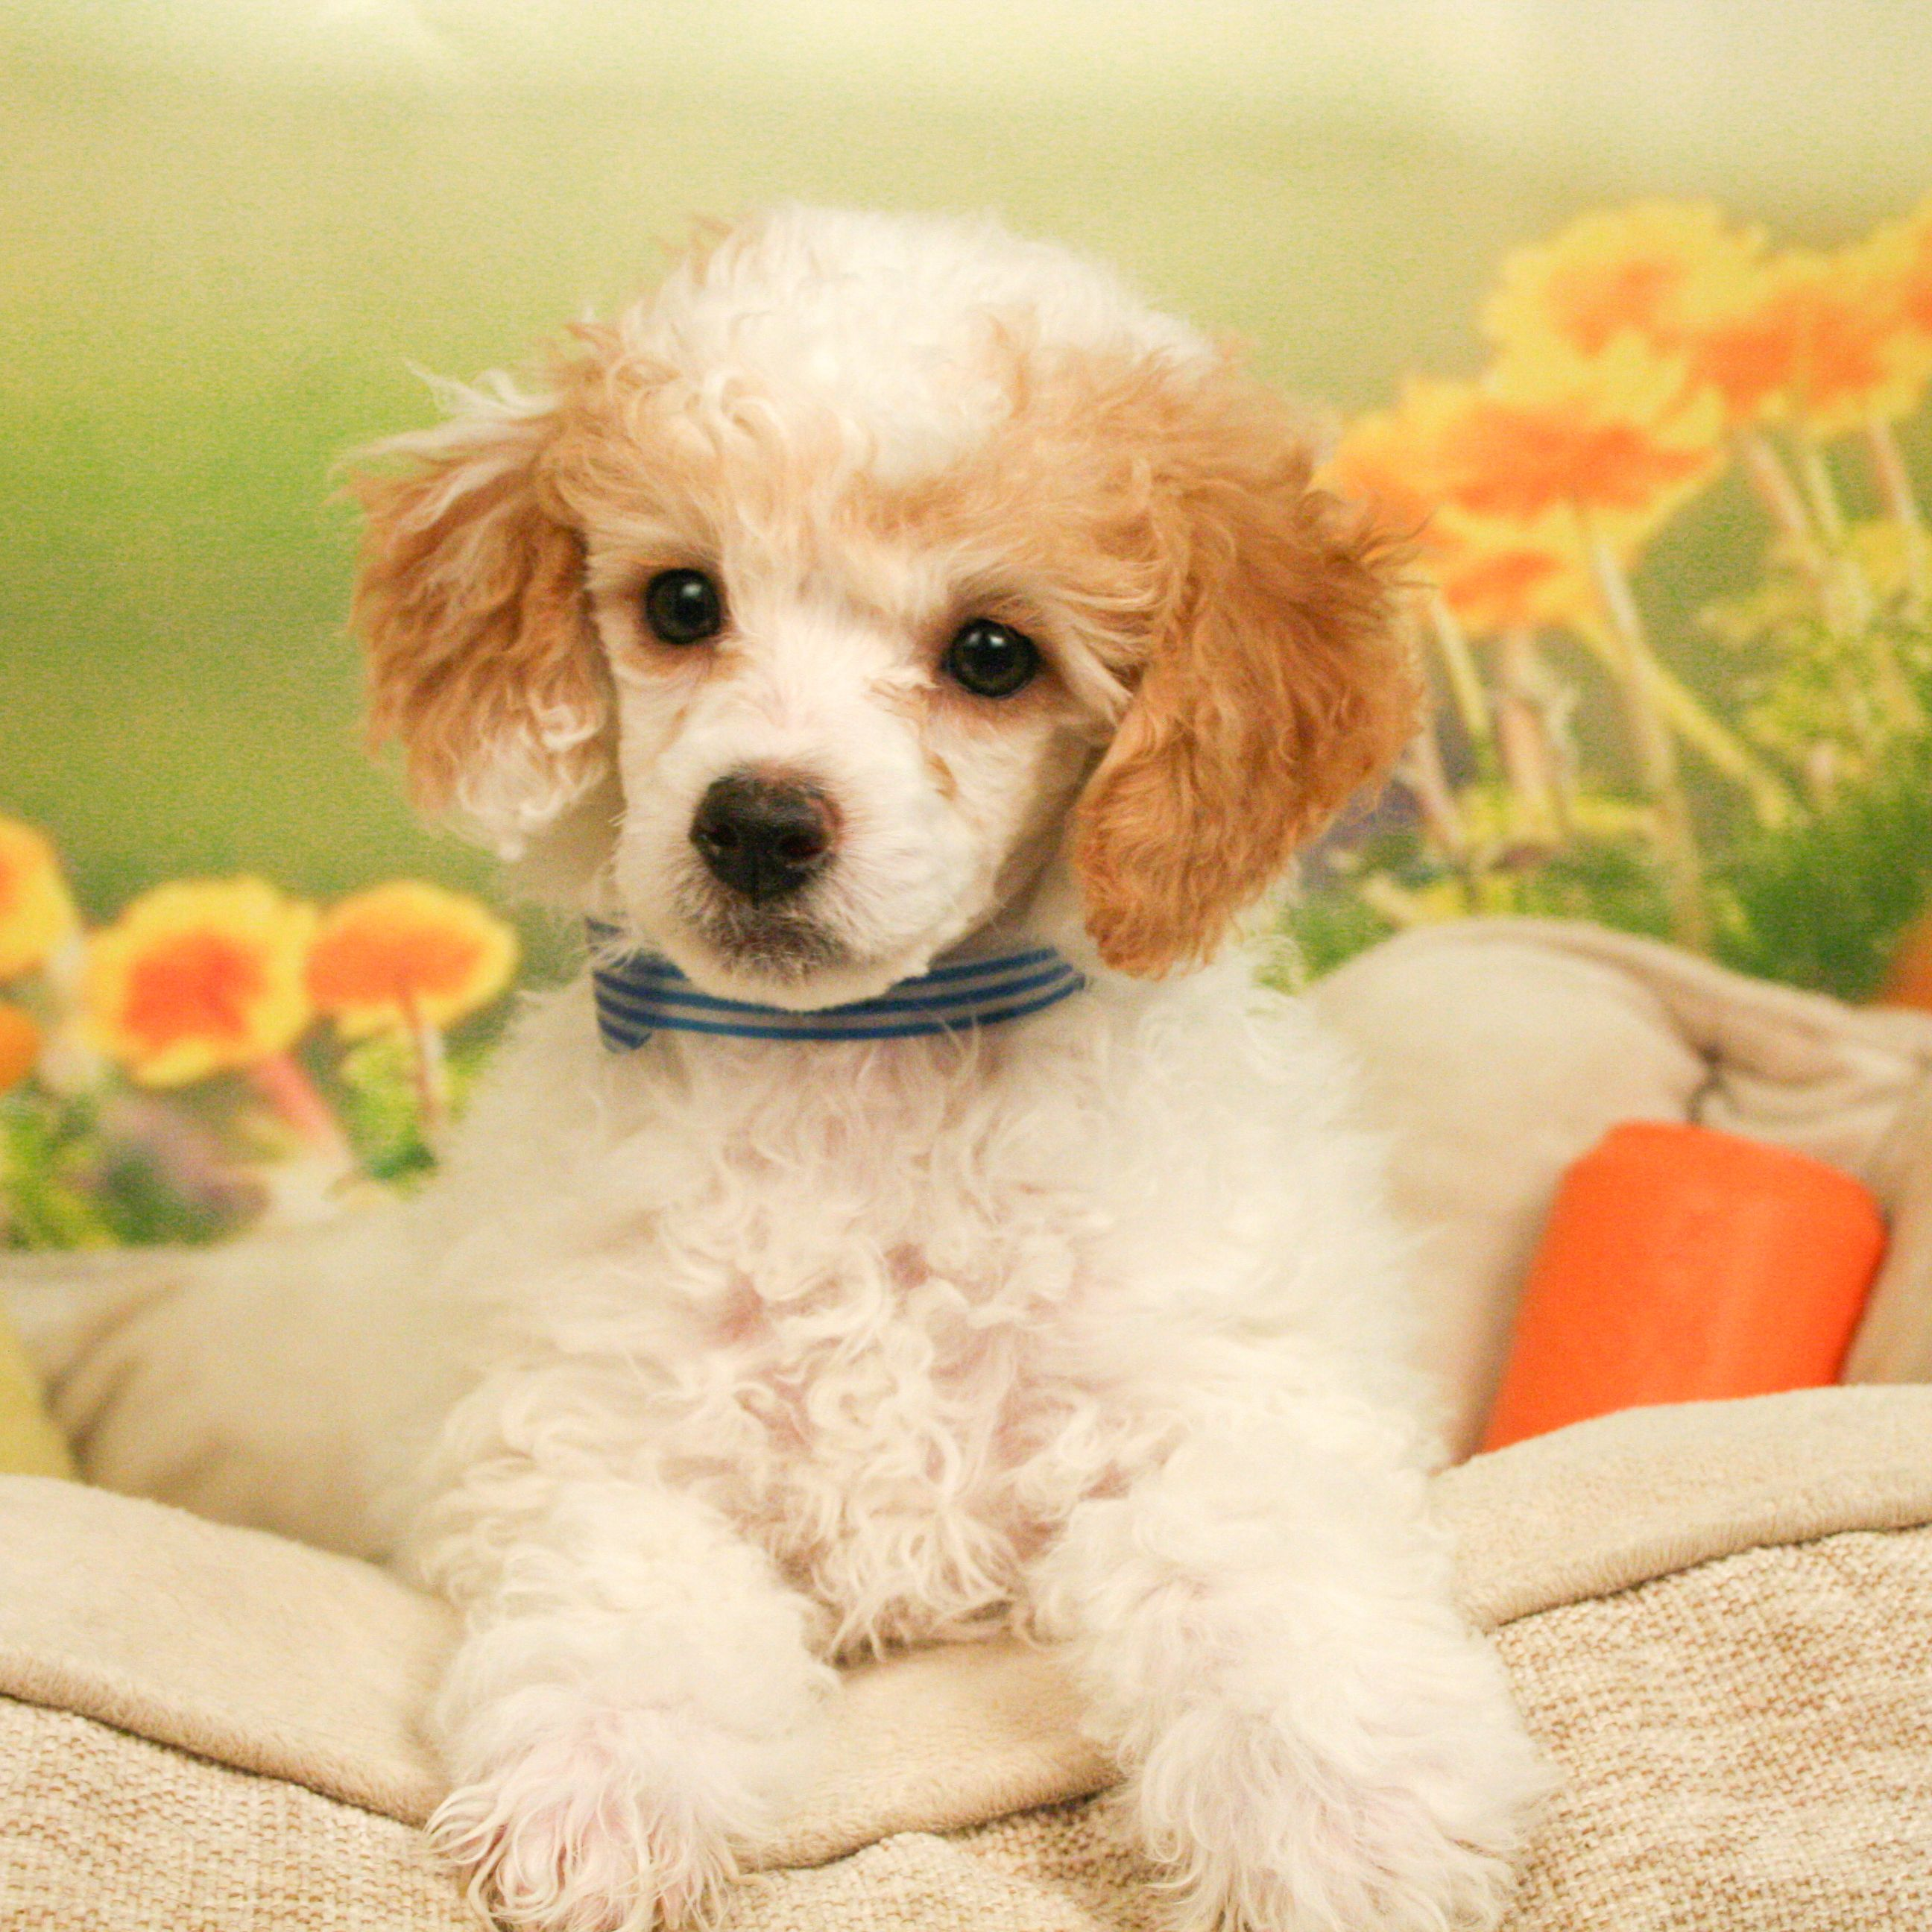 Standard Poodle Puppies For Sale Poodle Puppy Poodle Puppy Standard Poodle Puppies For Sale